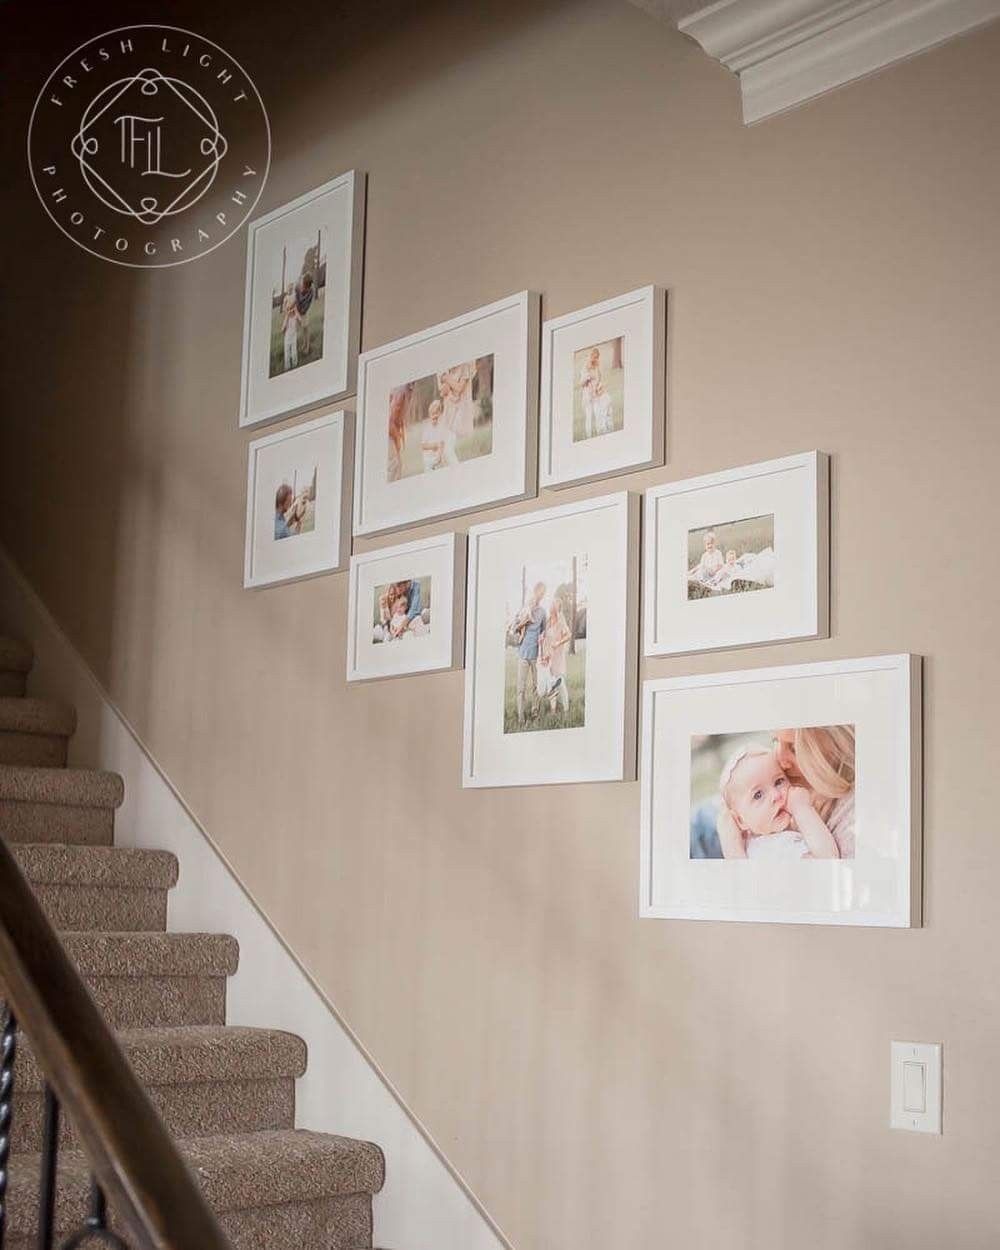 Staircase Ideas For Your Hallway That Will Really Make An: 6f0af928a8447525fe8b15064cf4aa0e.jpg 1,000×1,250 Pixels